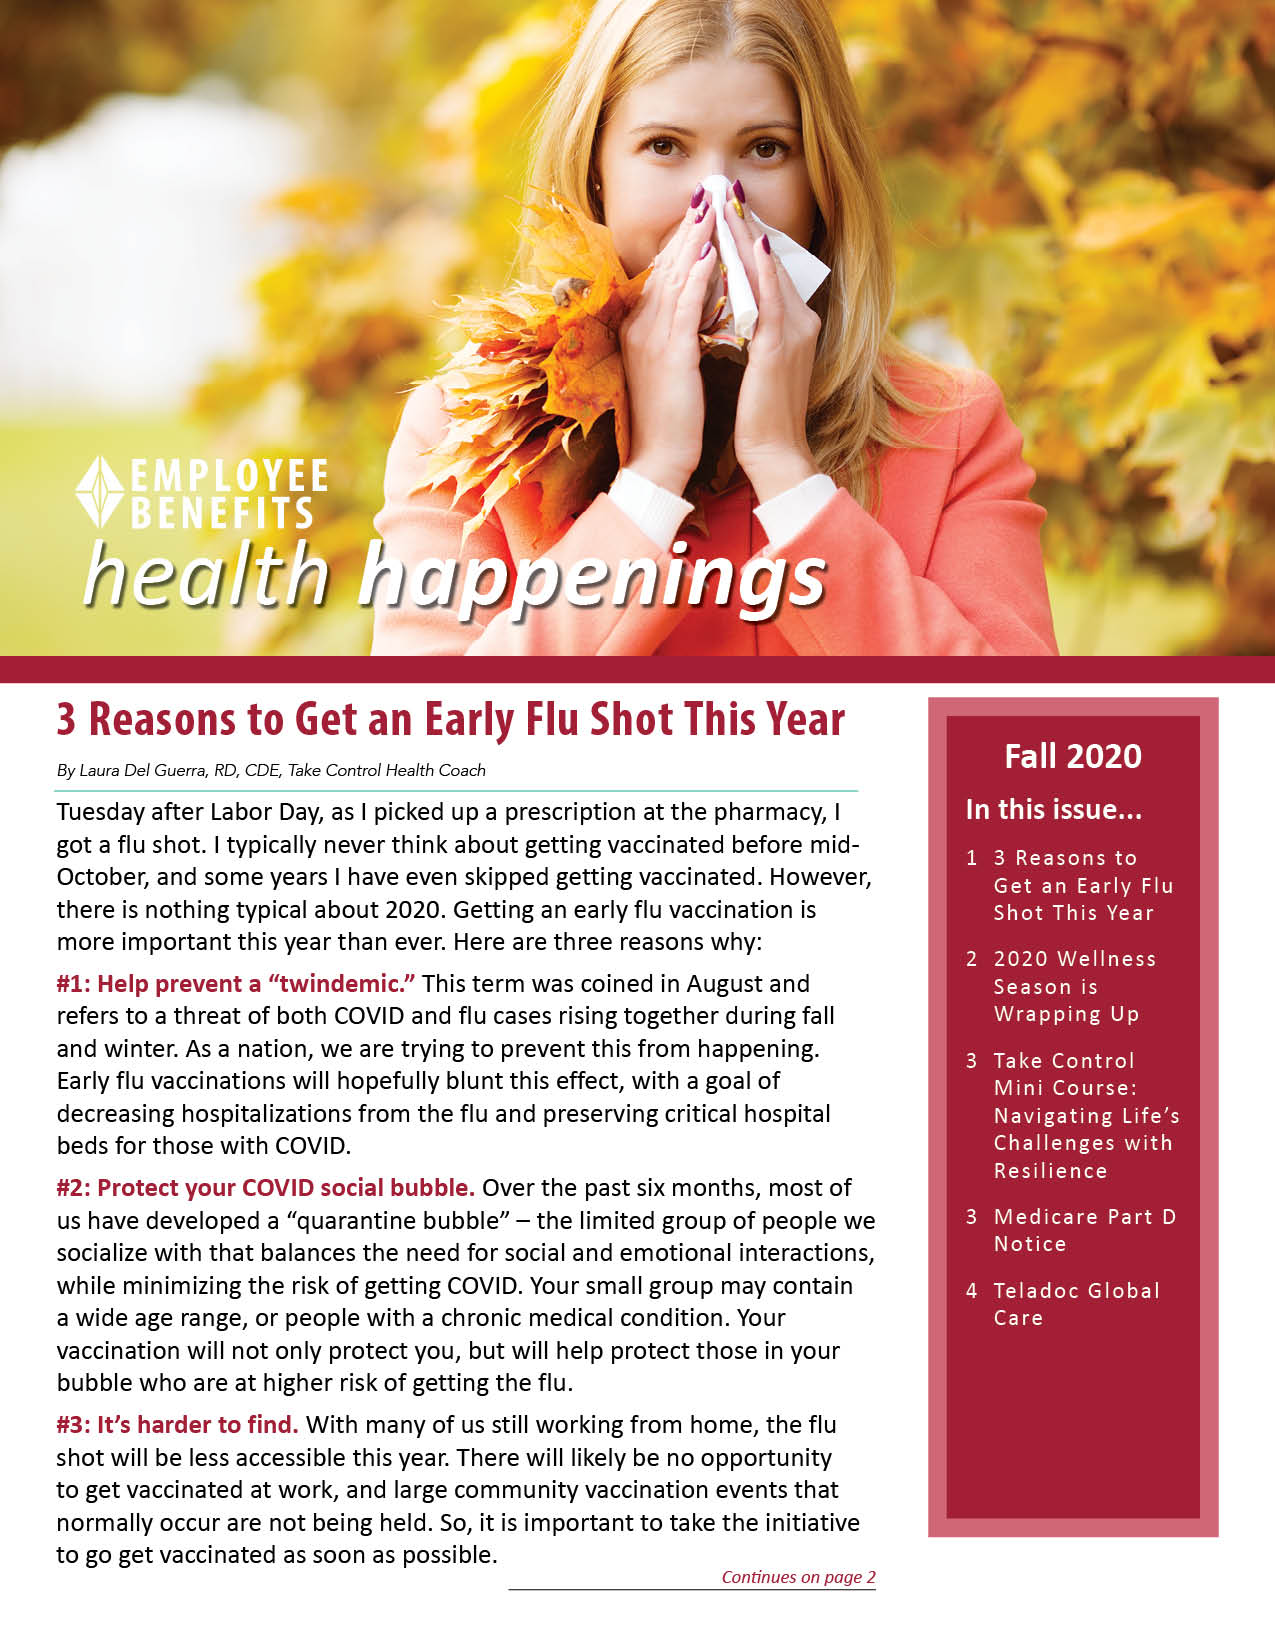 Employee Benefits Health happenings Front Cover - Fall 2020